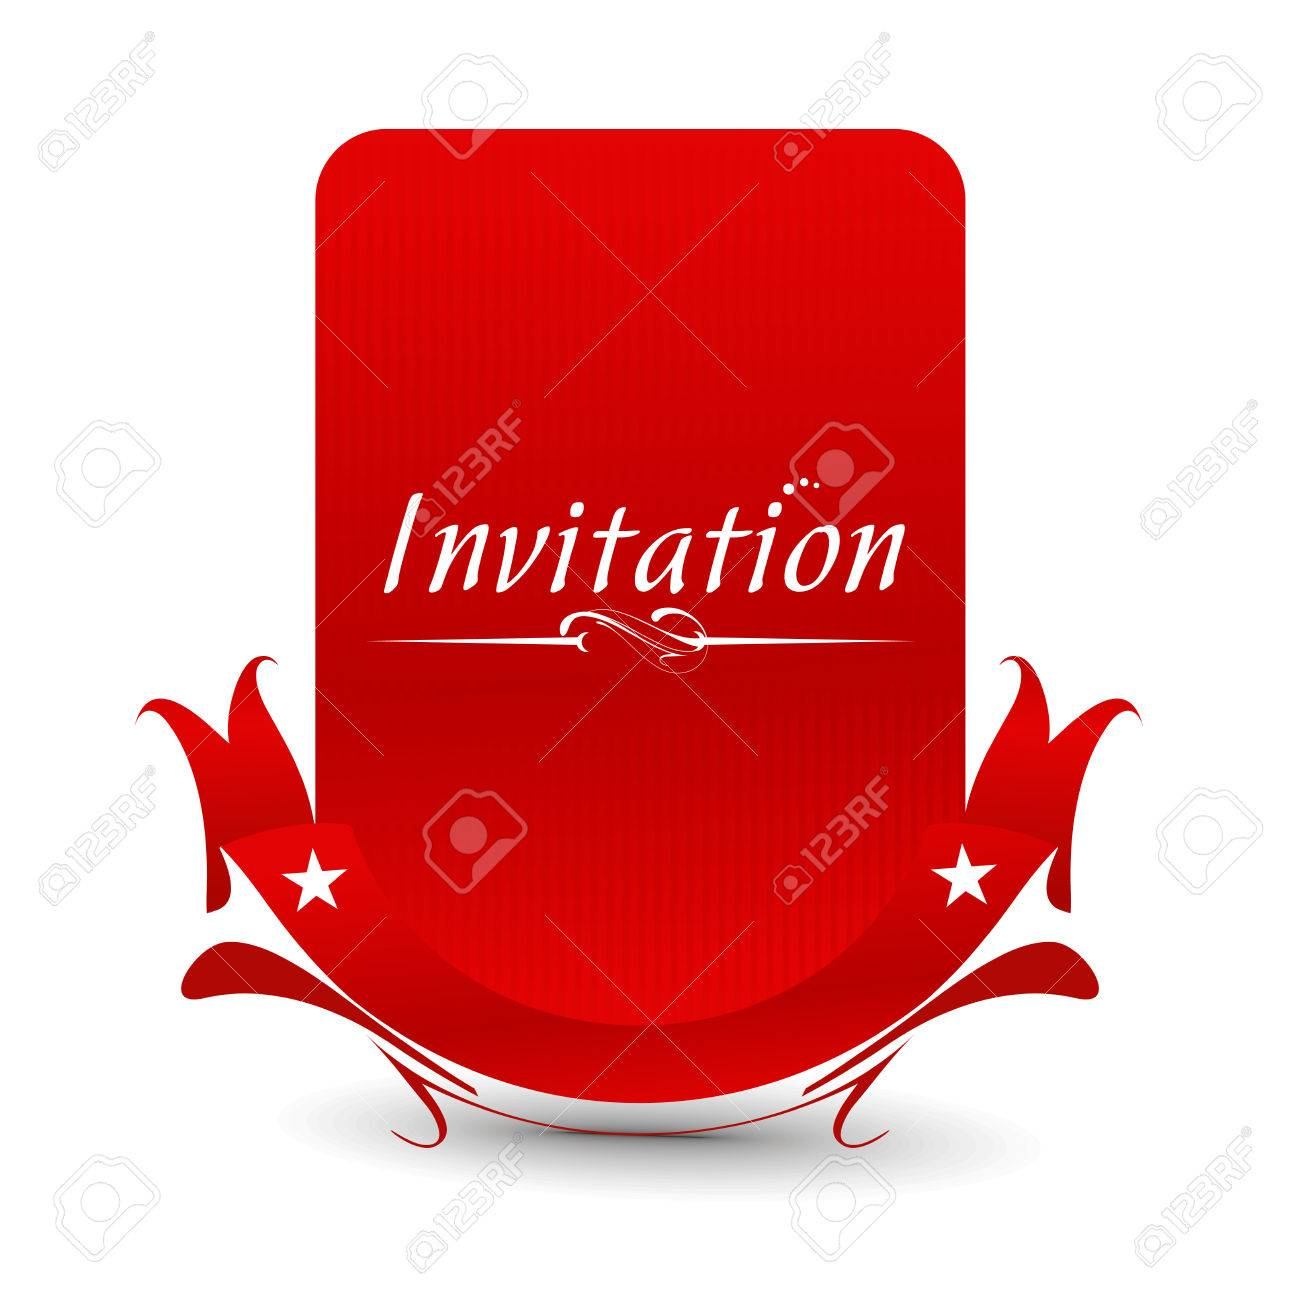 Design For Party Invitation Card Just Place Your Own Texts And – Party Invitation Card Design